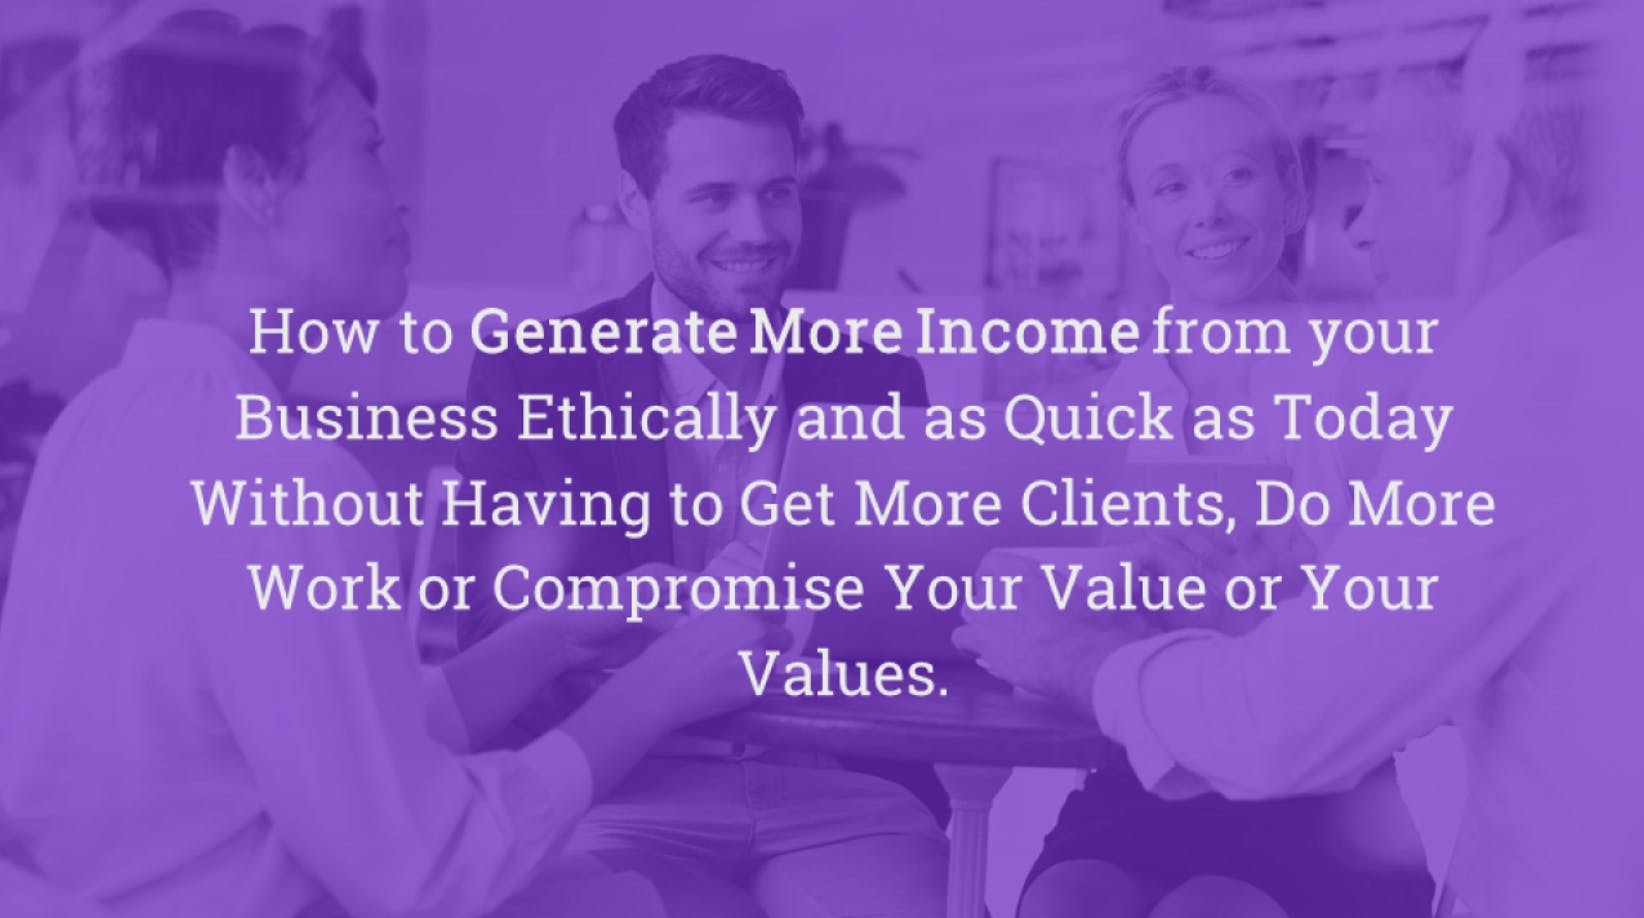 Free - For Professionals: How to Generate More Income Ethically Without Having to Get More Clients